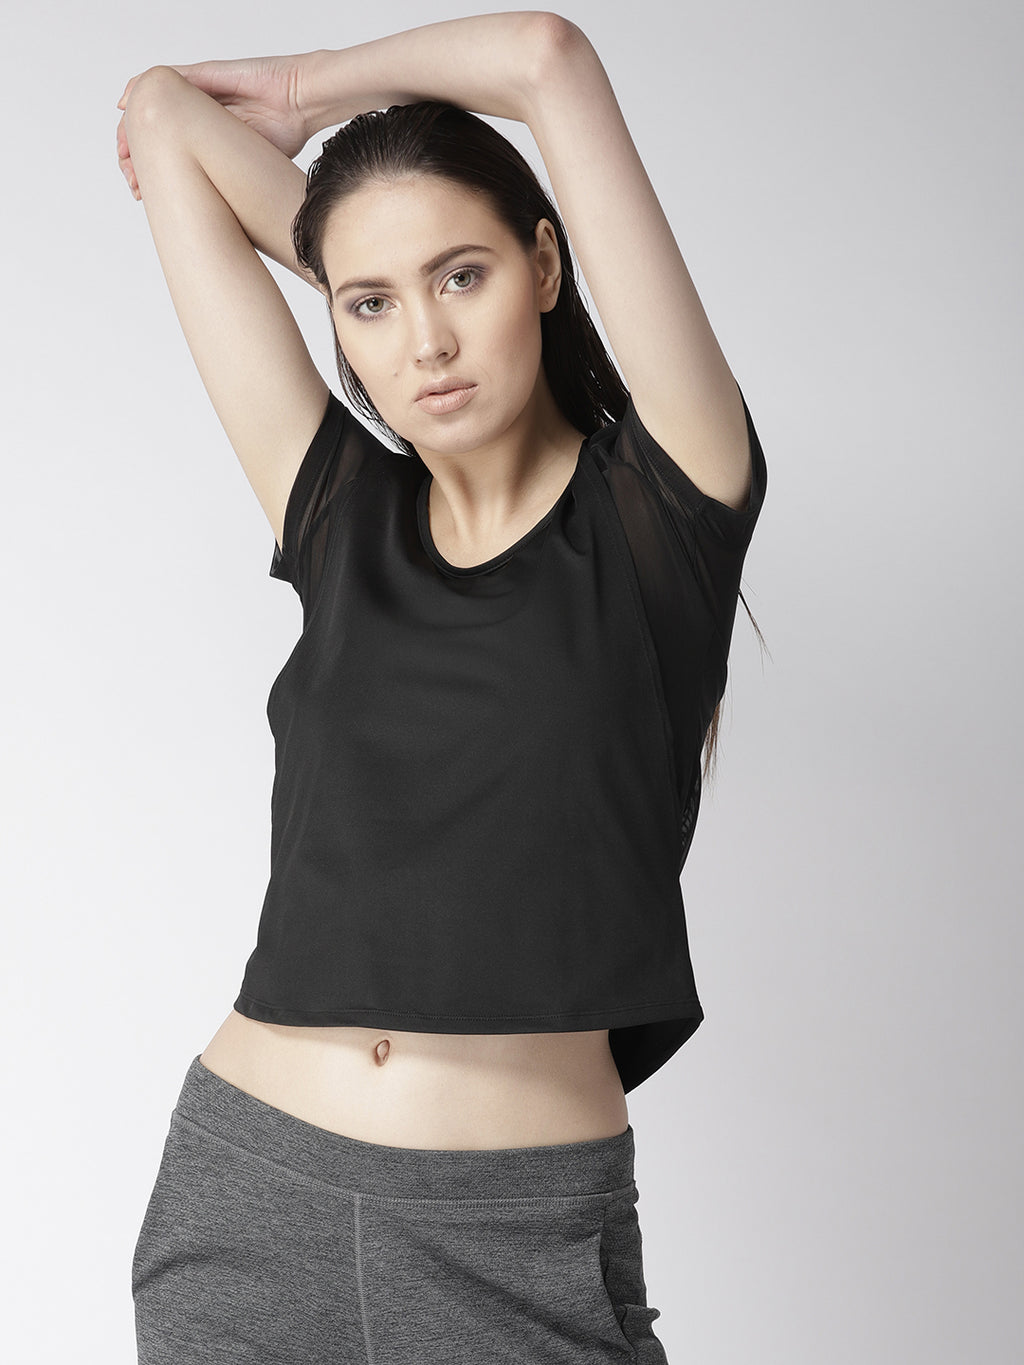 Fitkin Black Athleisure Layered Gym Top